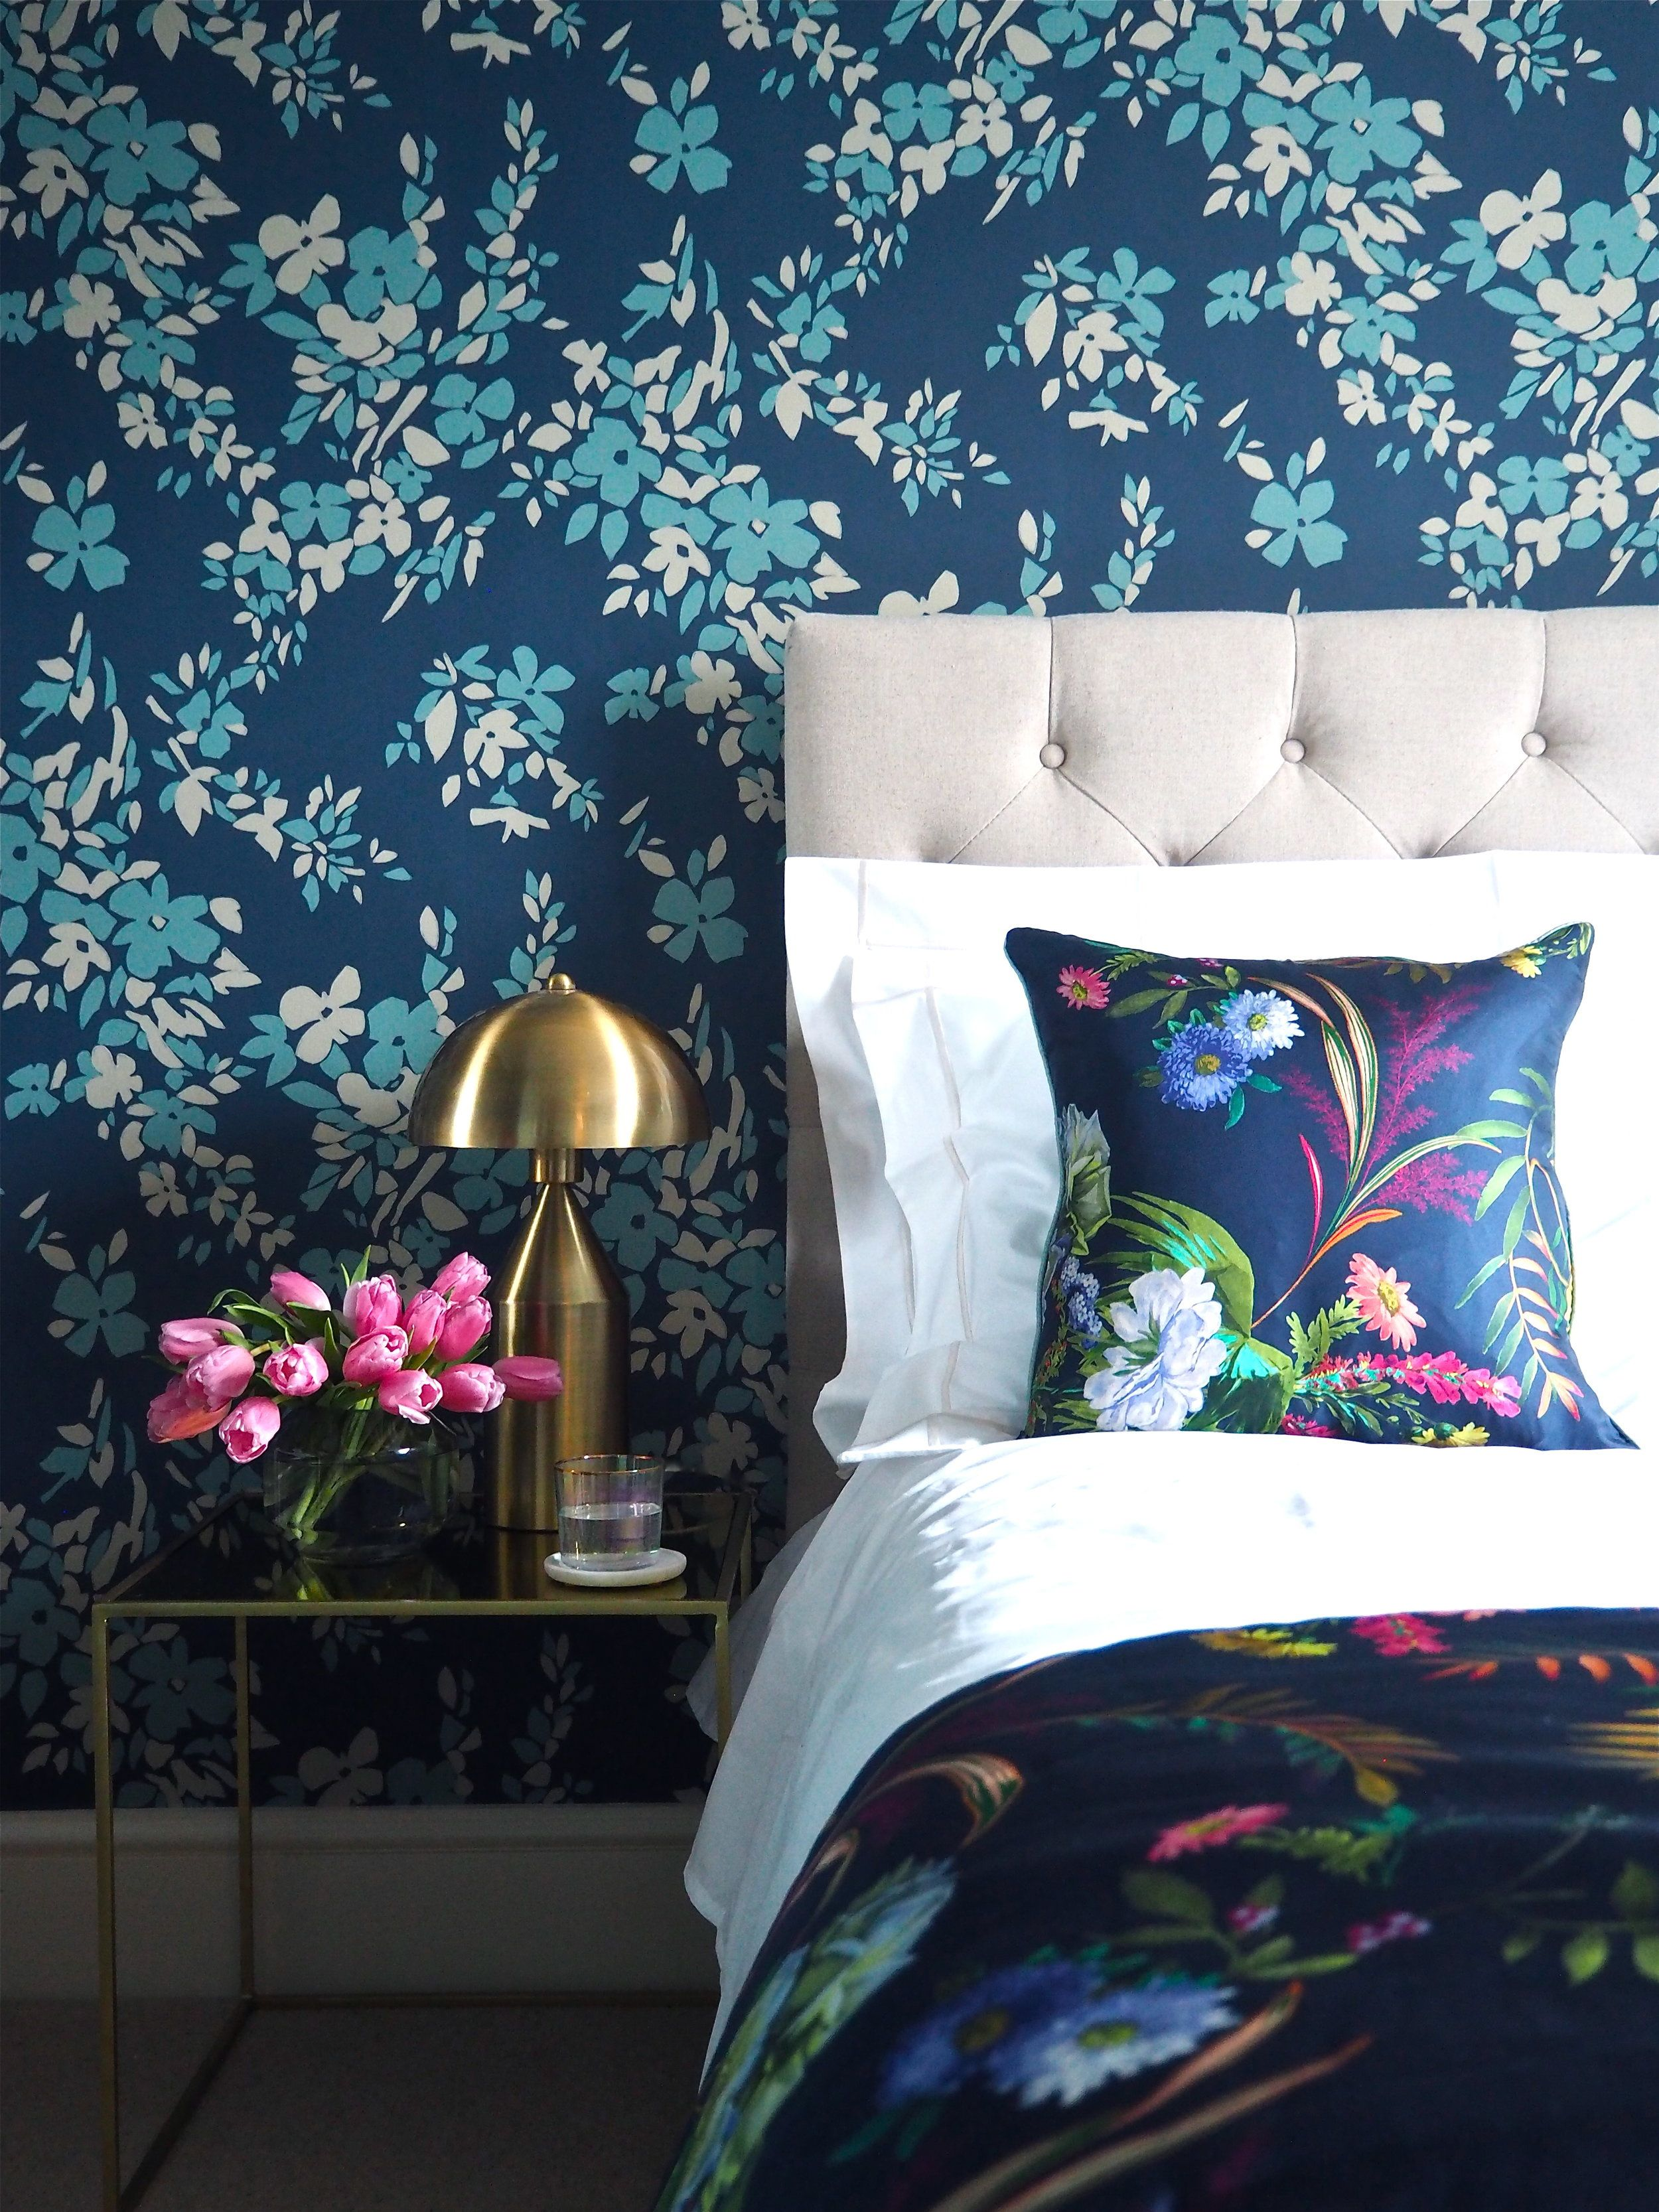 Maximalist Decor Ideas That Will Totally Transform A Boring Room